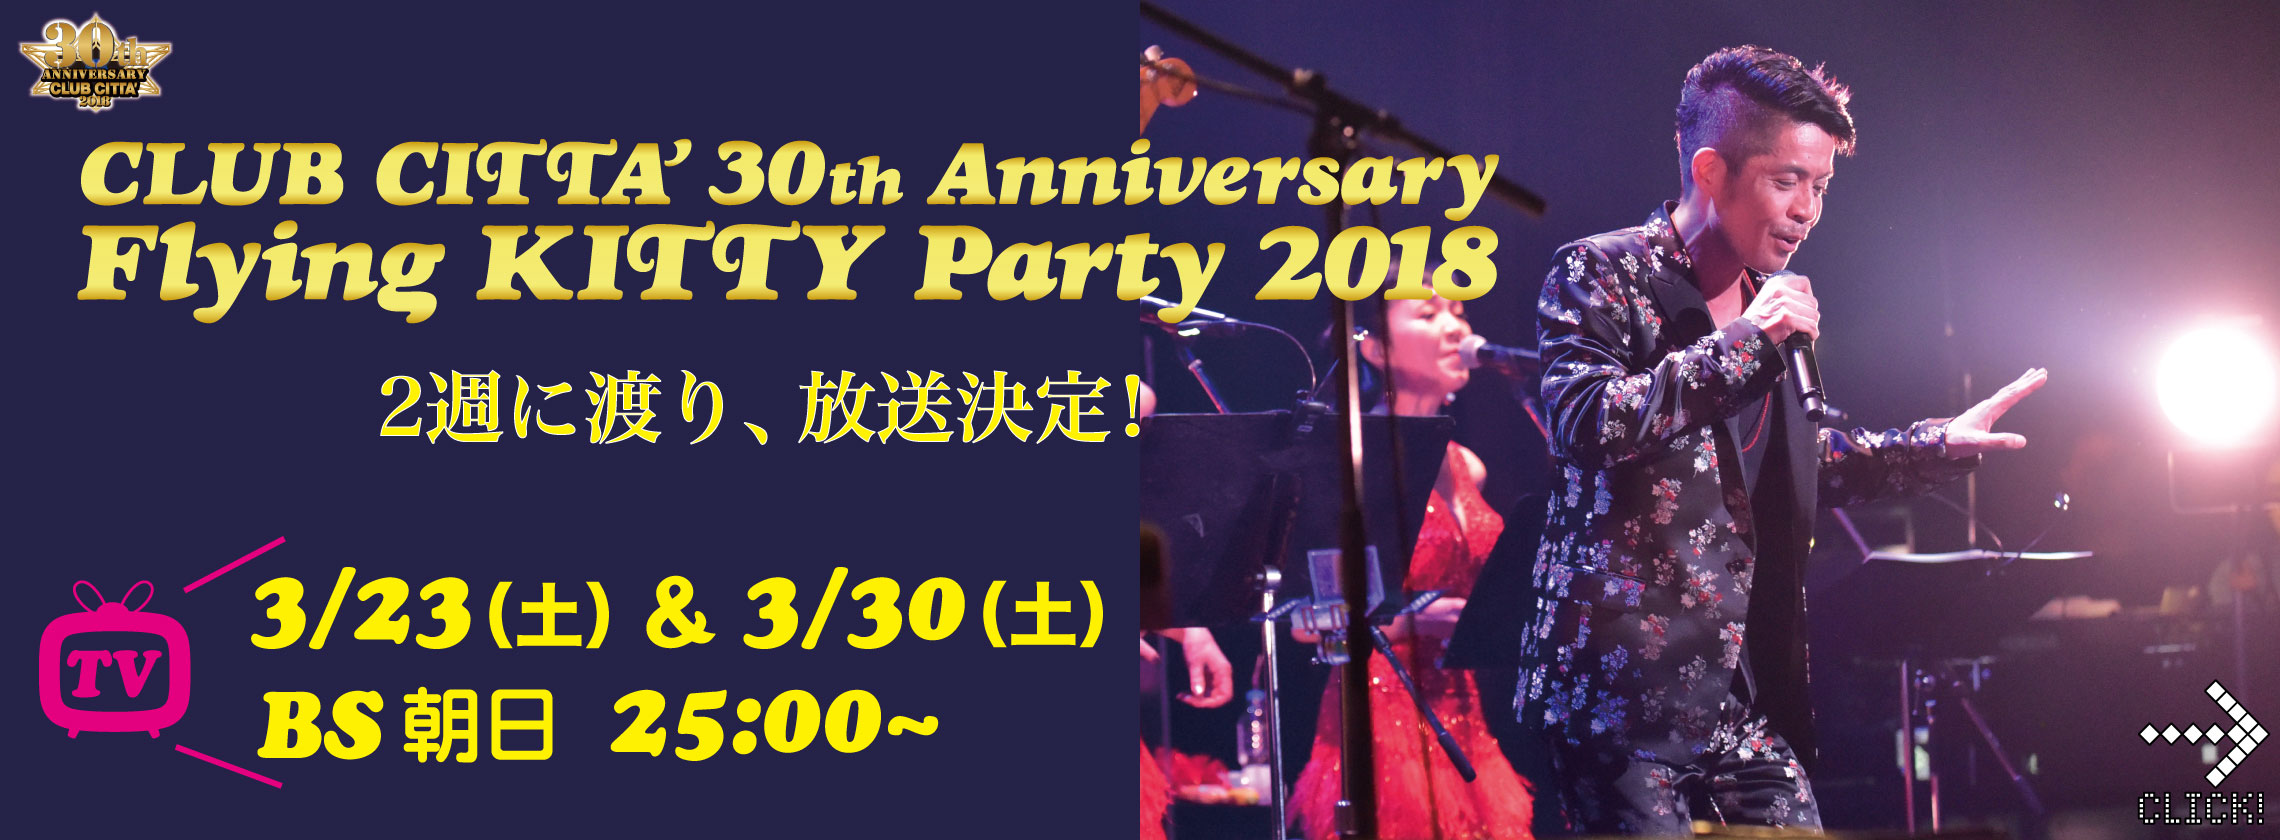 「CLUB CITTA' 30th Anniversary Flying KITTY Party 2018」放送決定!